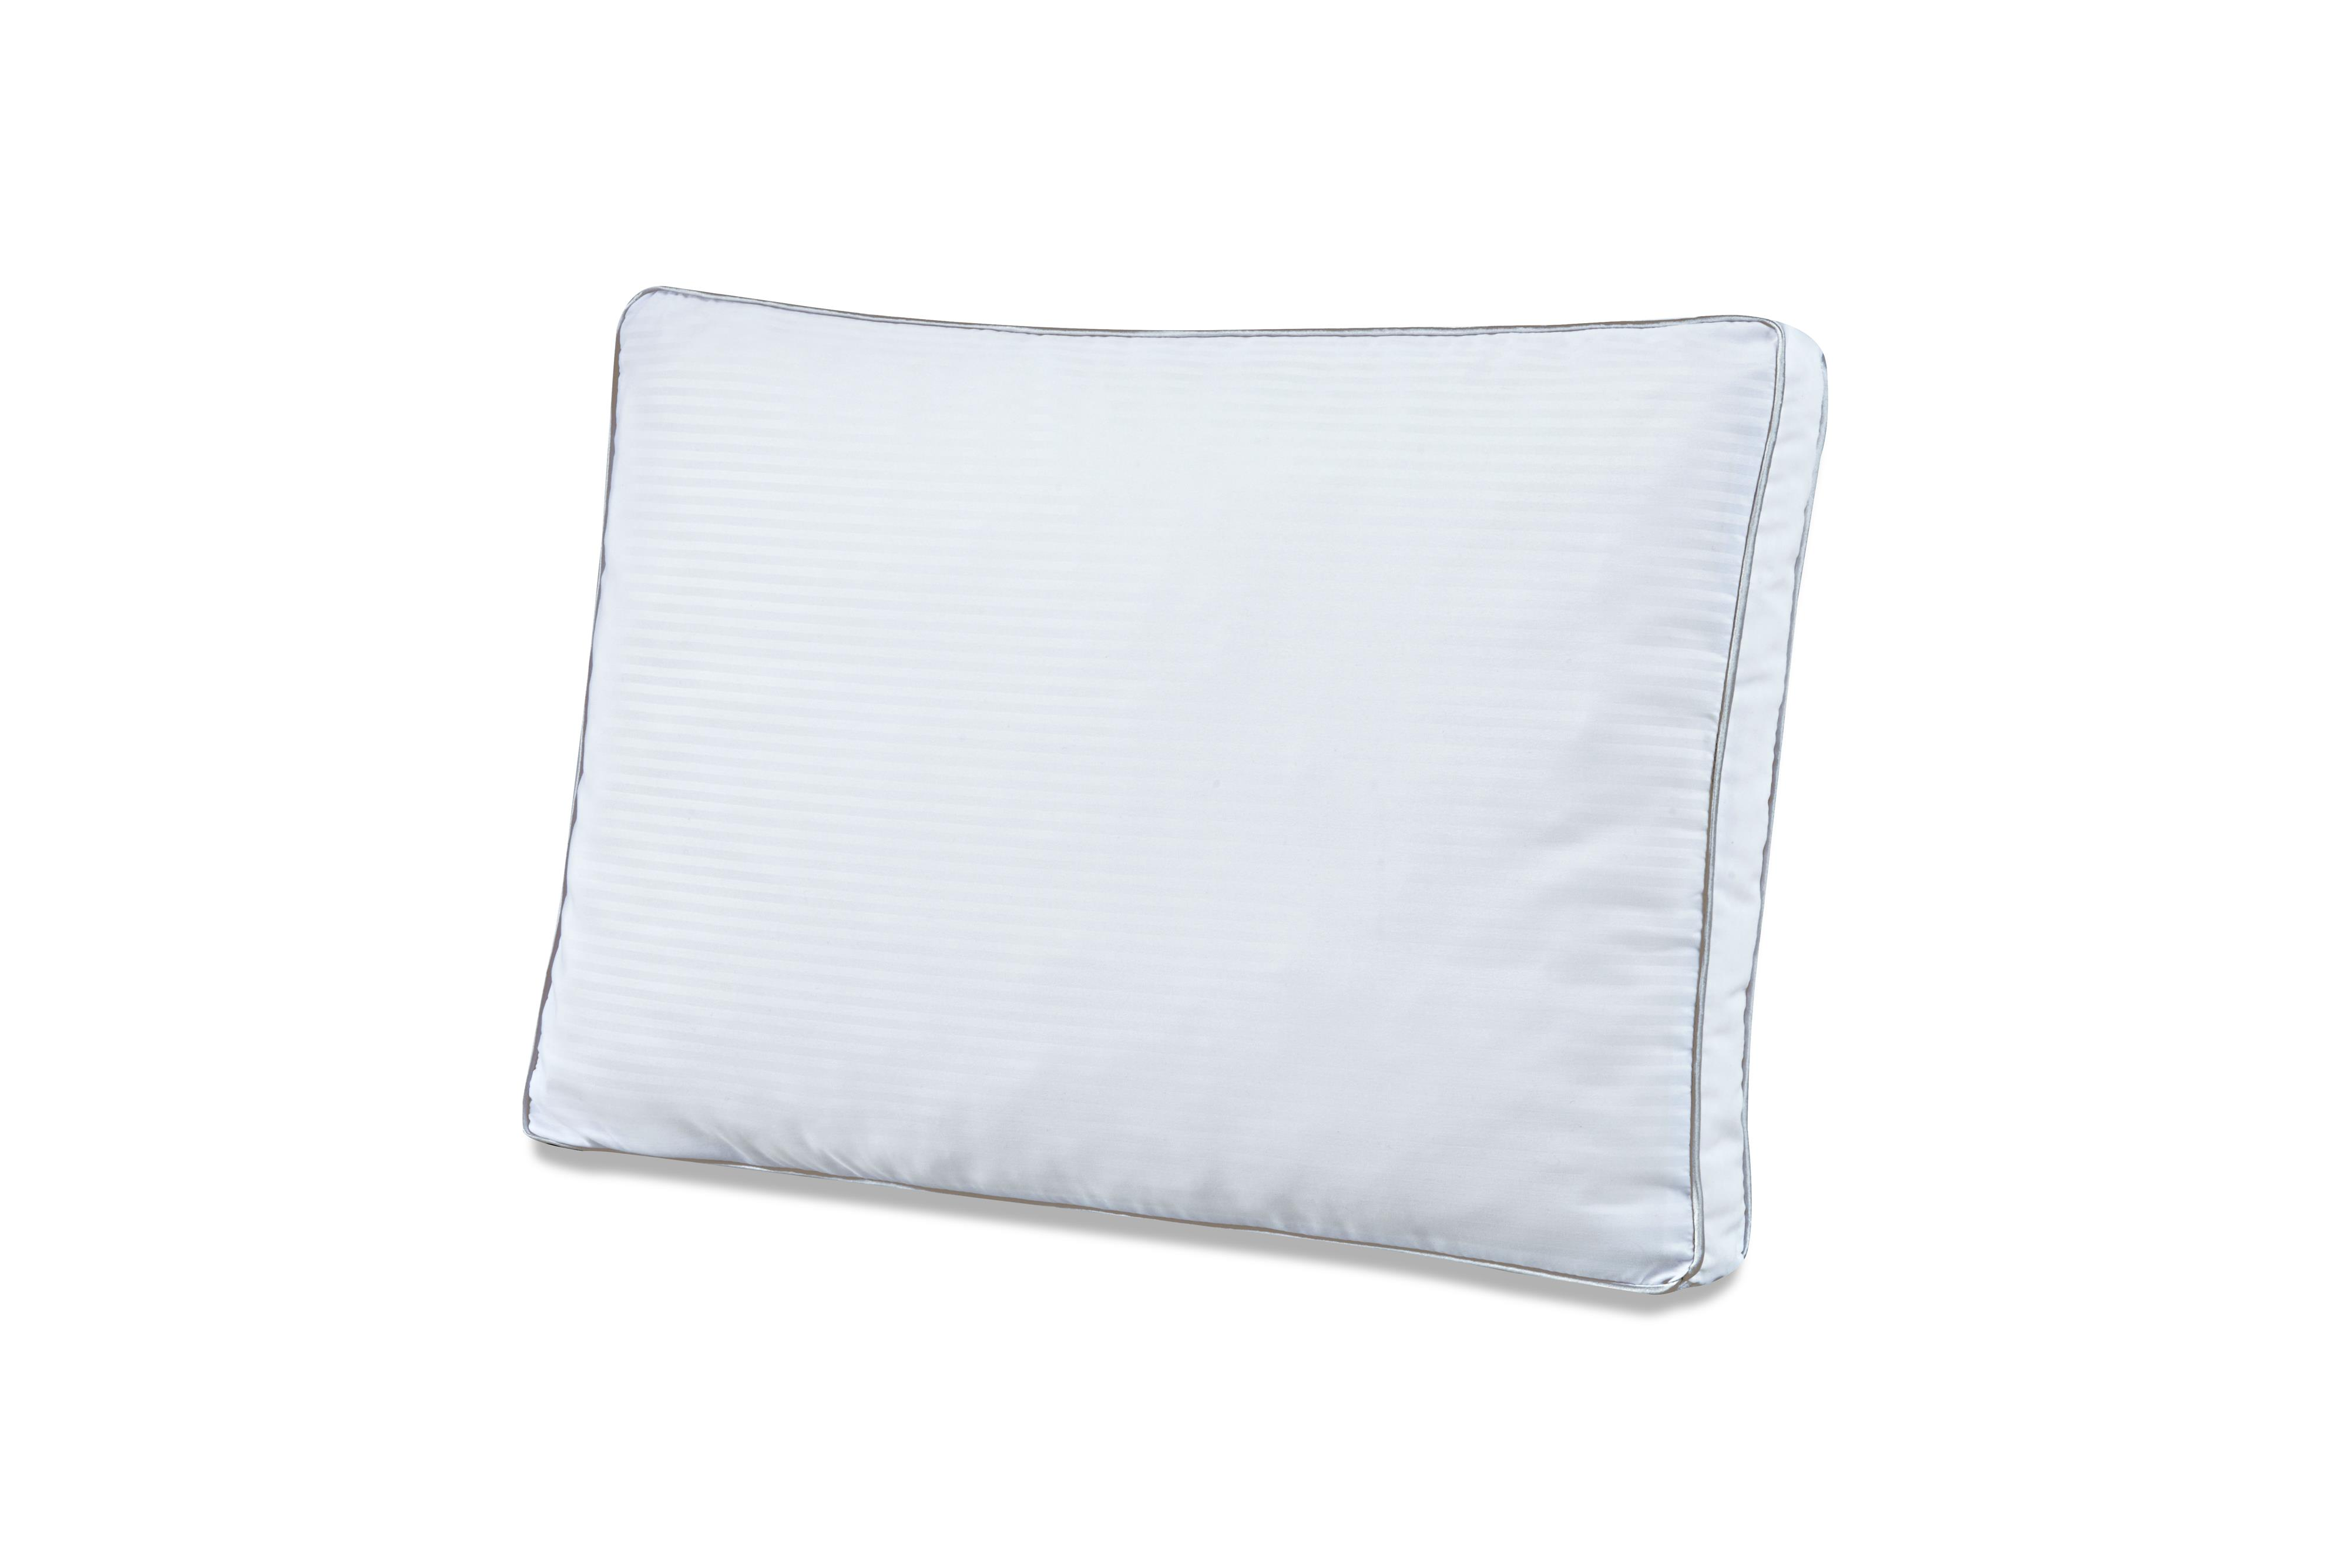 Pillows - Enso Queen 2 Pack of Puregel Memory Foam Pillows by Enso Sleep Systems at Dream Home Interiors